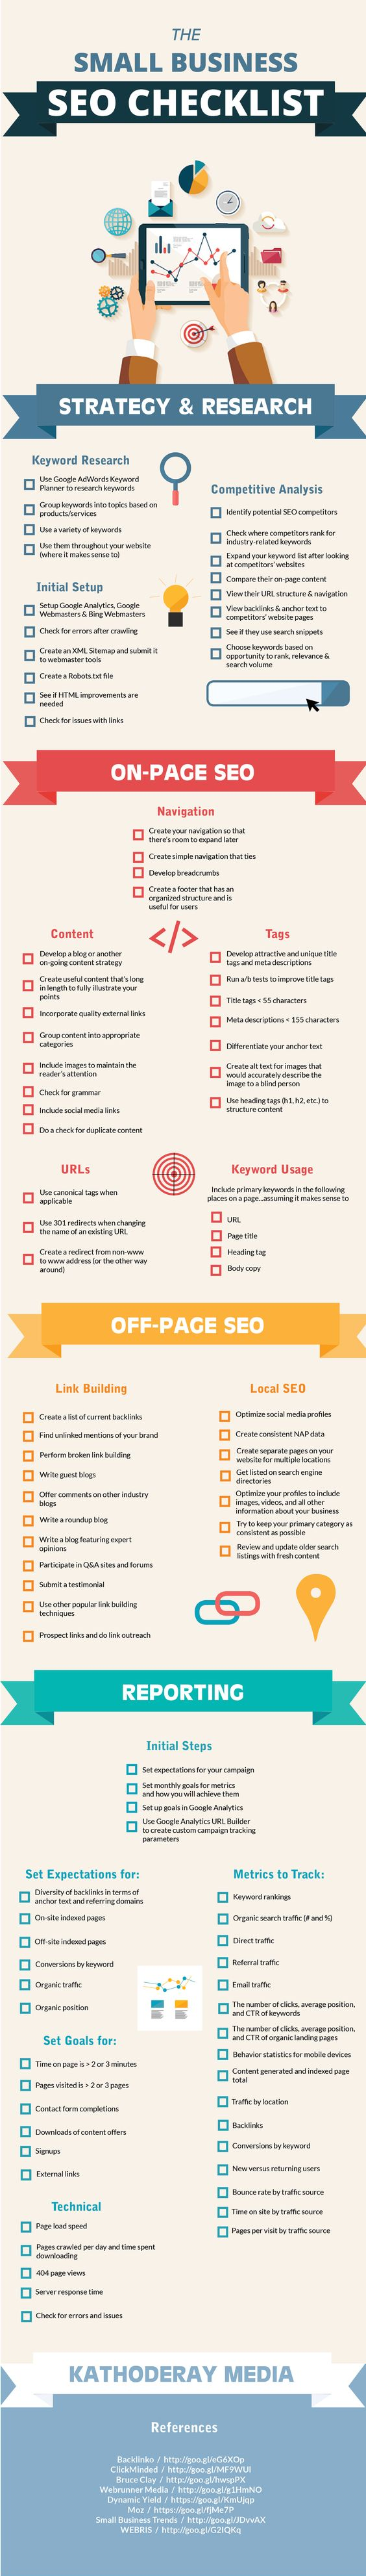 Looking for a way to improve your small business's SEO? Use our SEO checklist to get information on research, local SEO, on-page SEO, off-page SEO, and more!